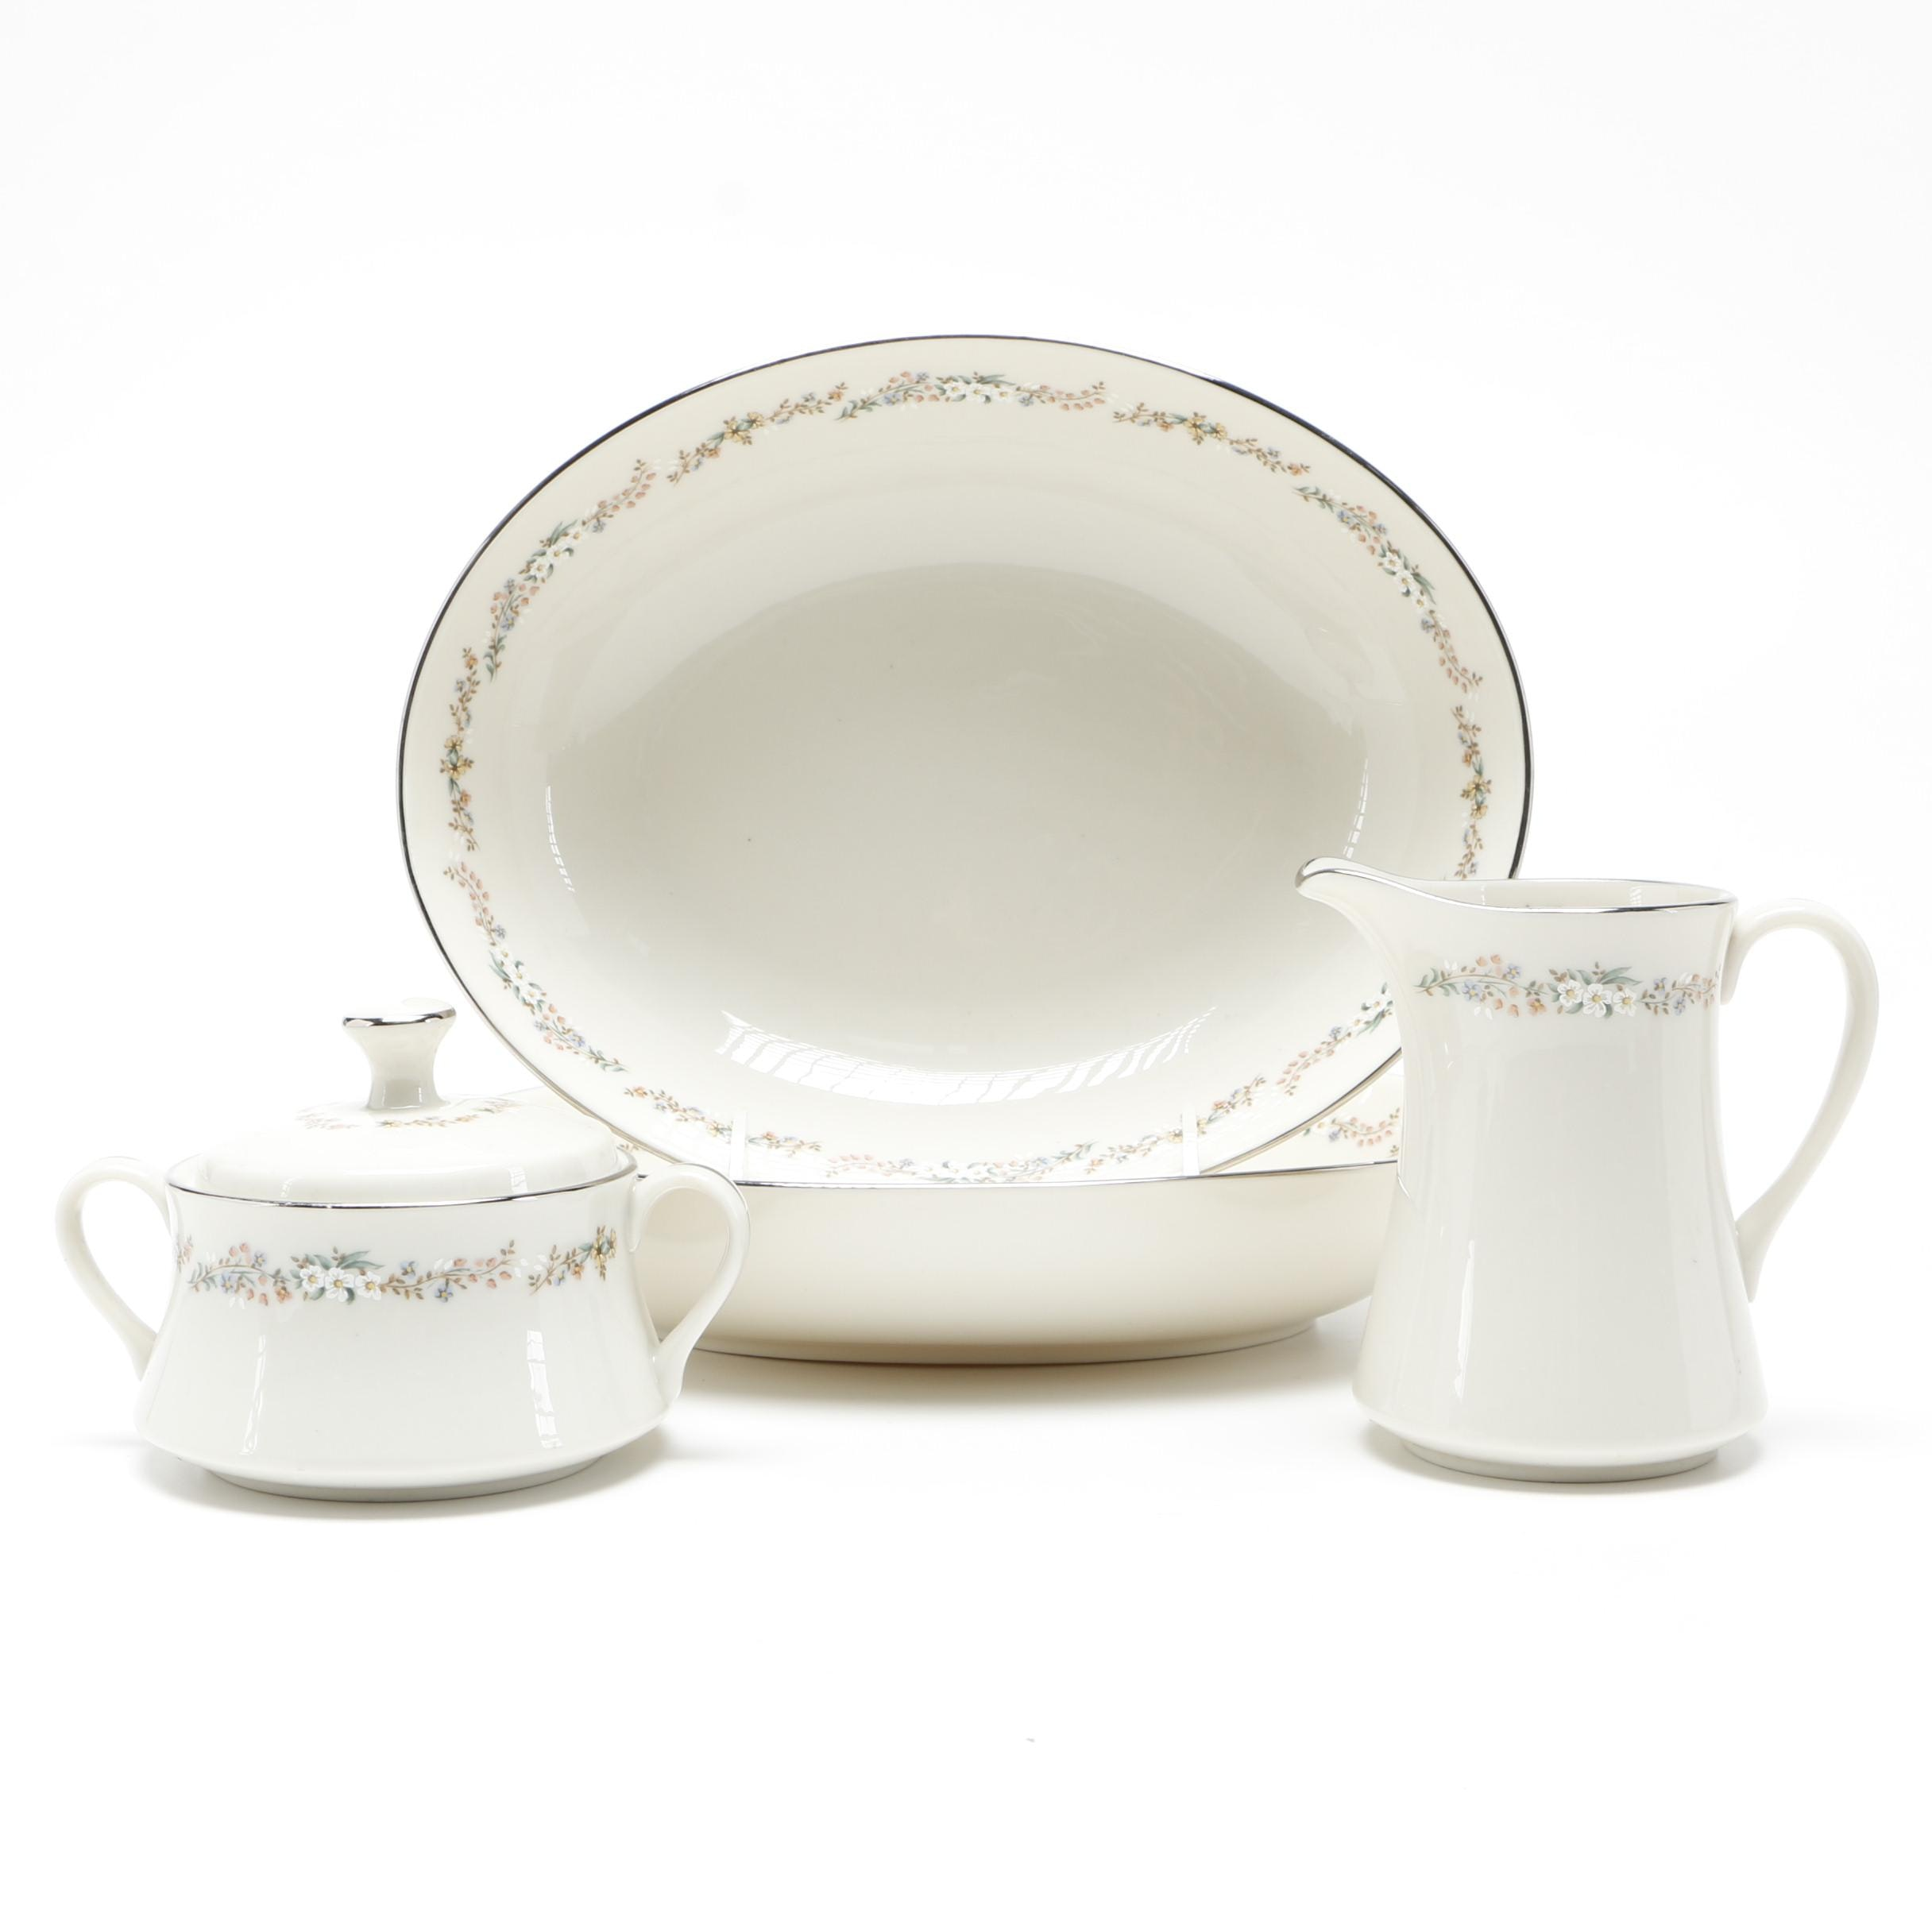 "Gorham Fine China ""Rondelle"" Serving Set"